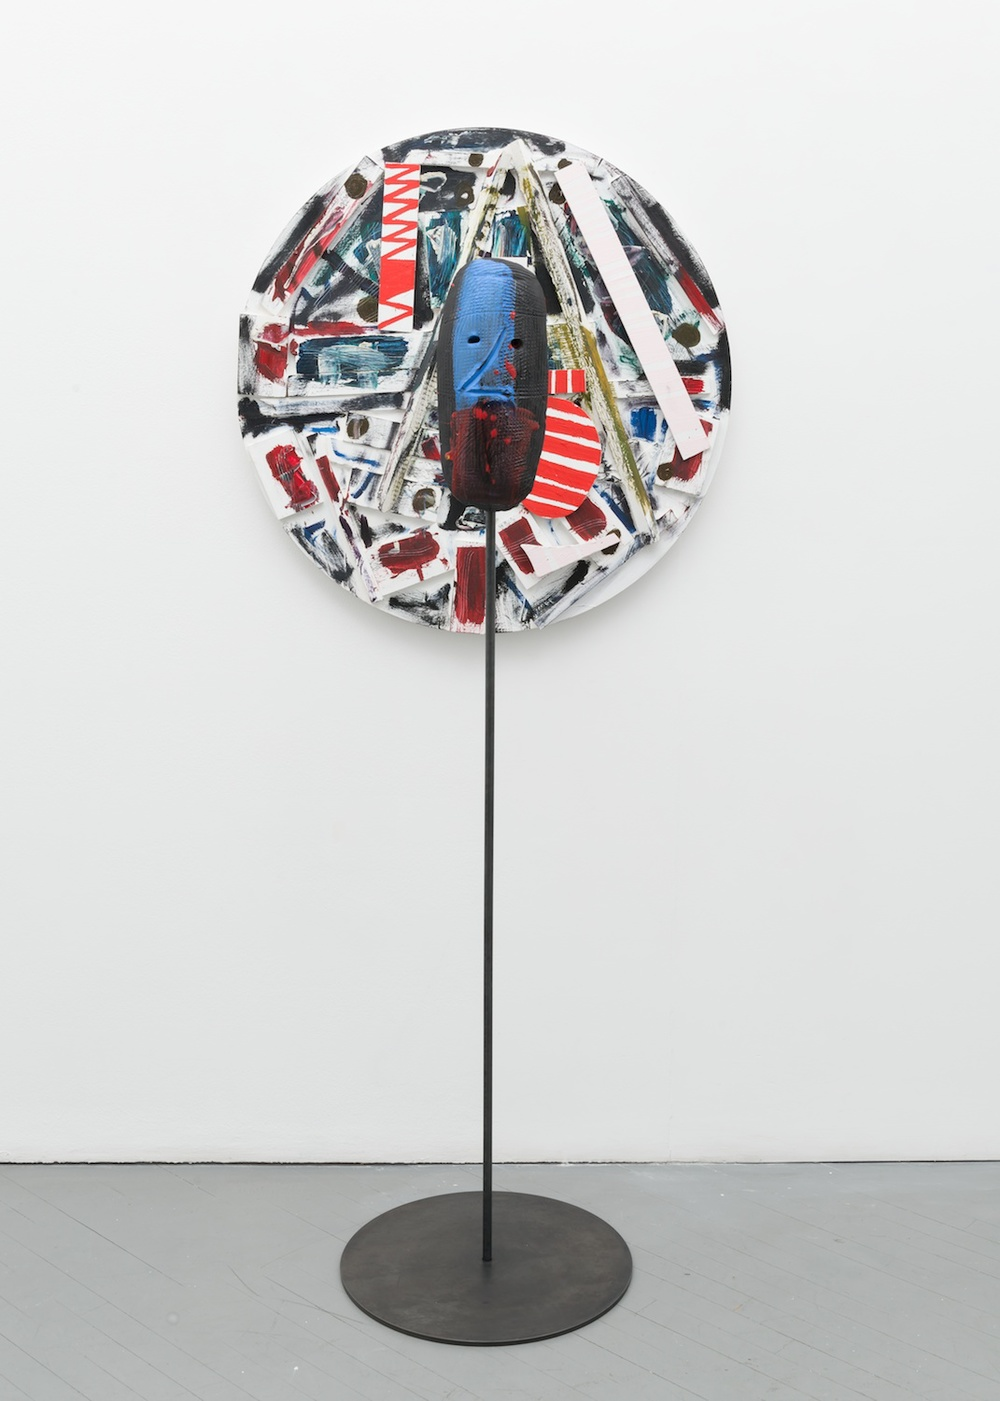 William J. O'Brien  Untitled  2013/2014 Mixed media on wood; Glazed ceramic on steel armature 35h x 35w in (painting); 66 ½h x 20w x 20d in (ceramic + stand) WOB904/WOB933